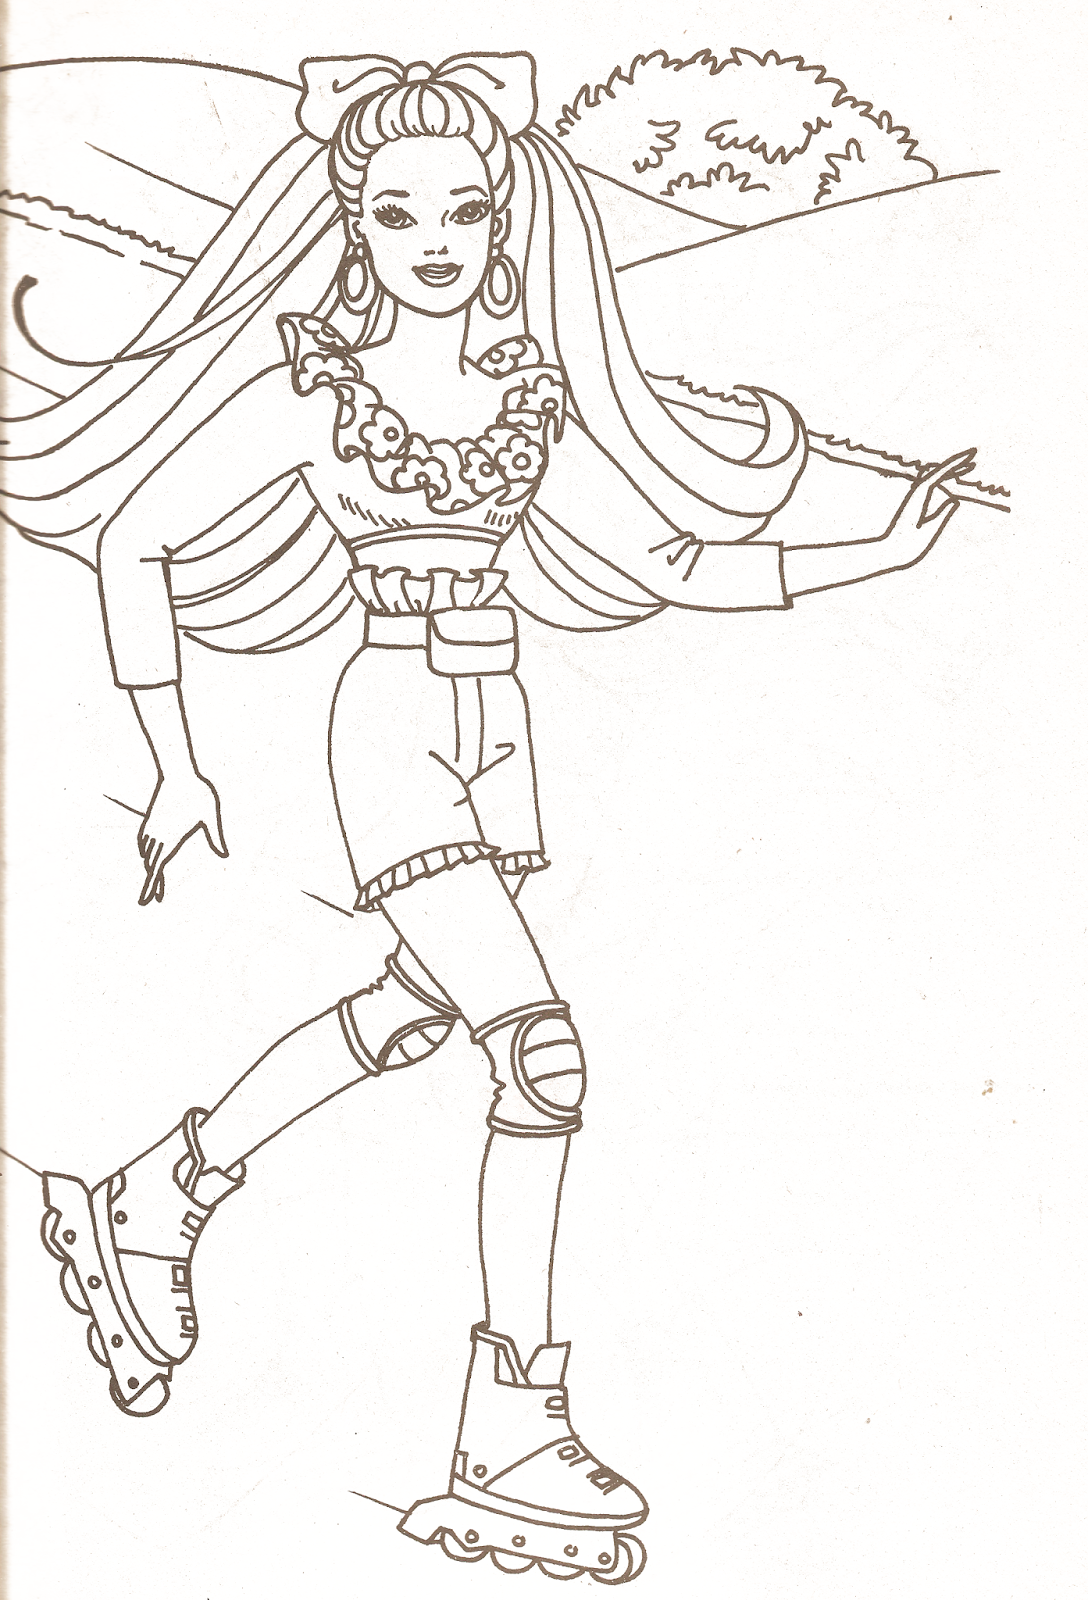 Miss Missy Paper Dolls Barbie coloring pages part 2 Coloring